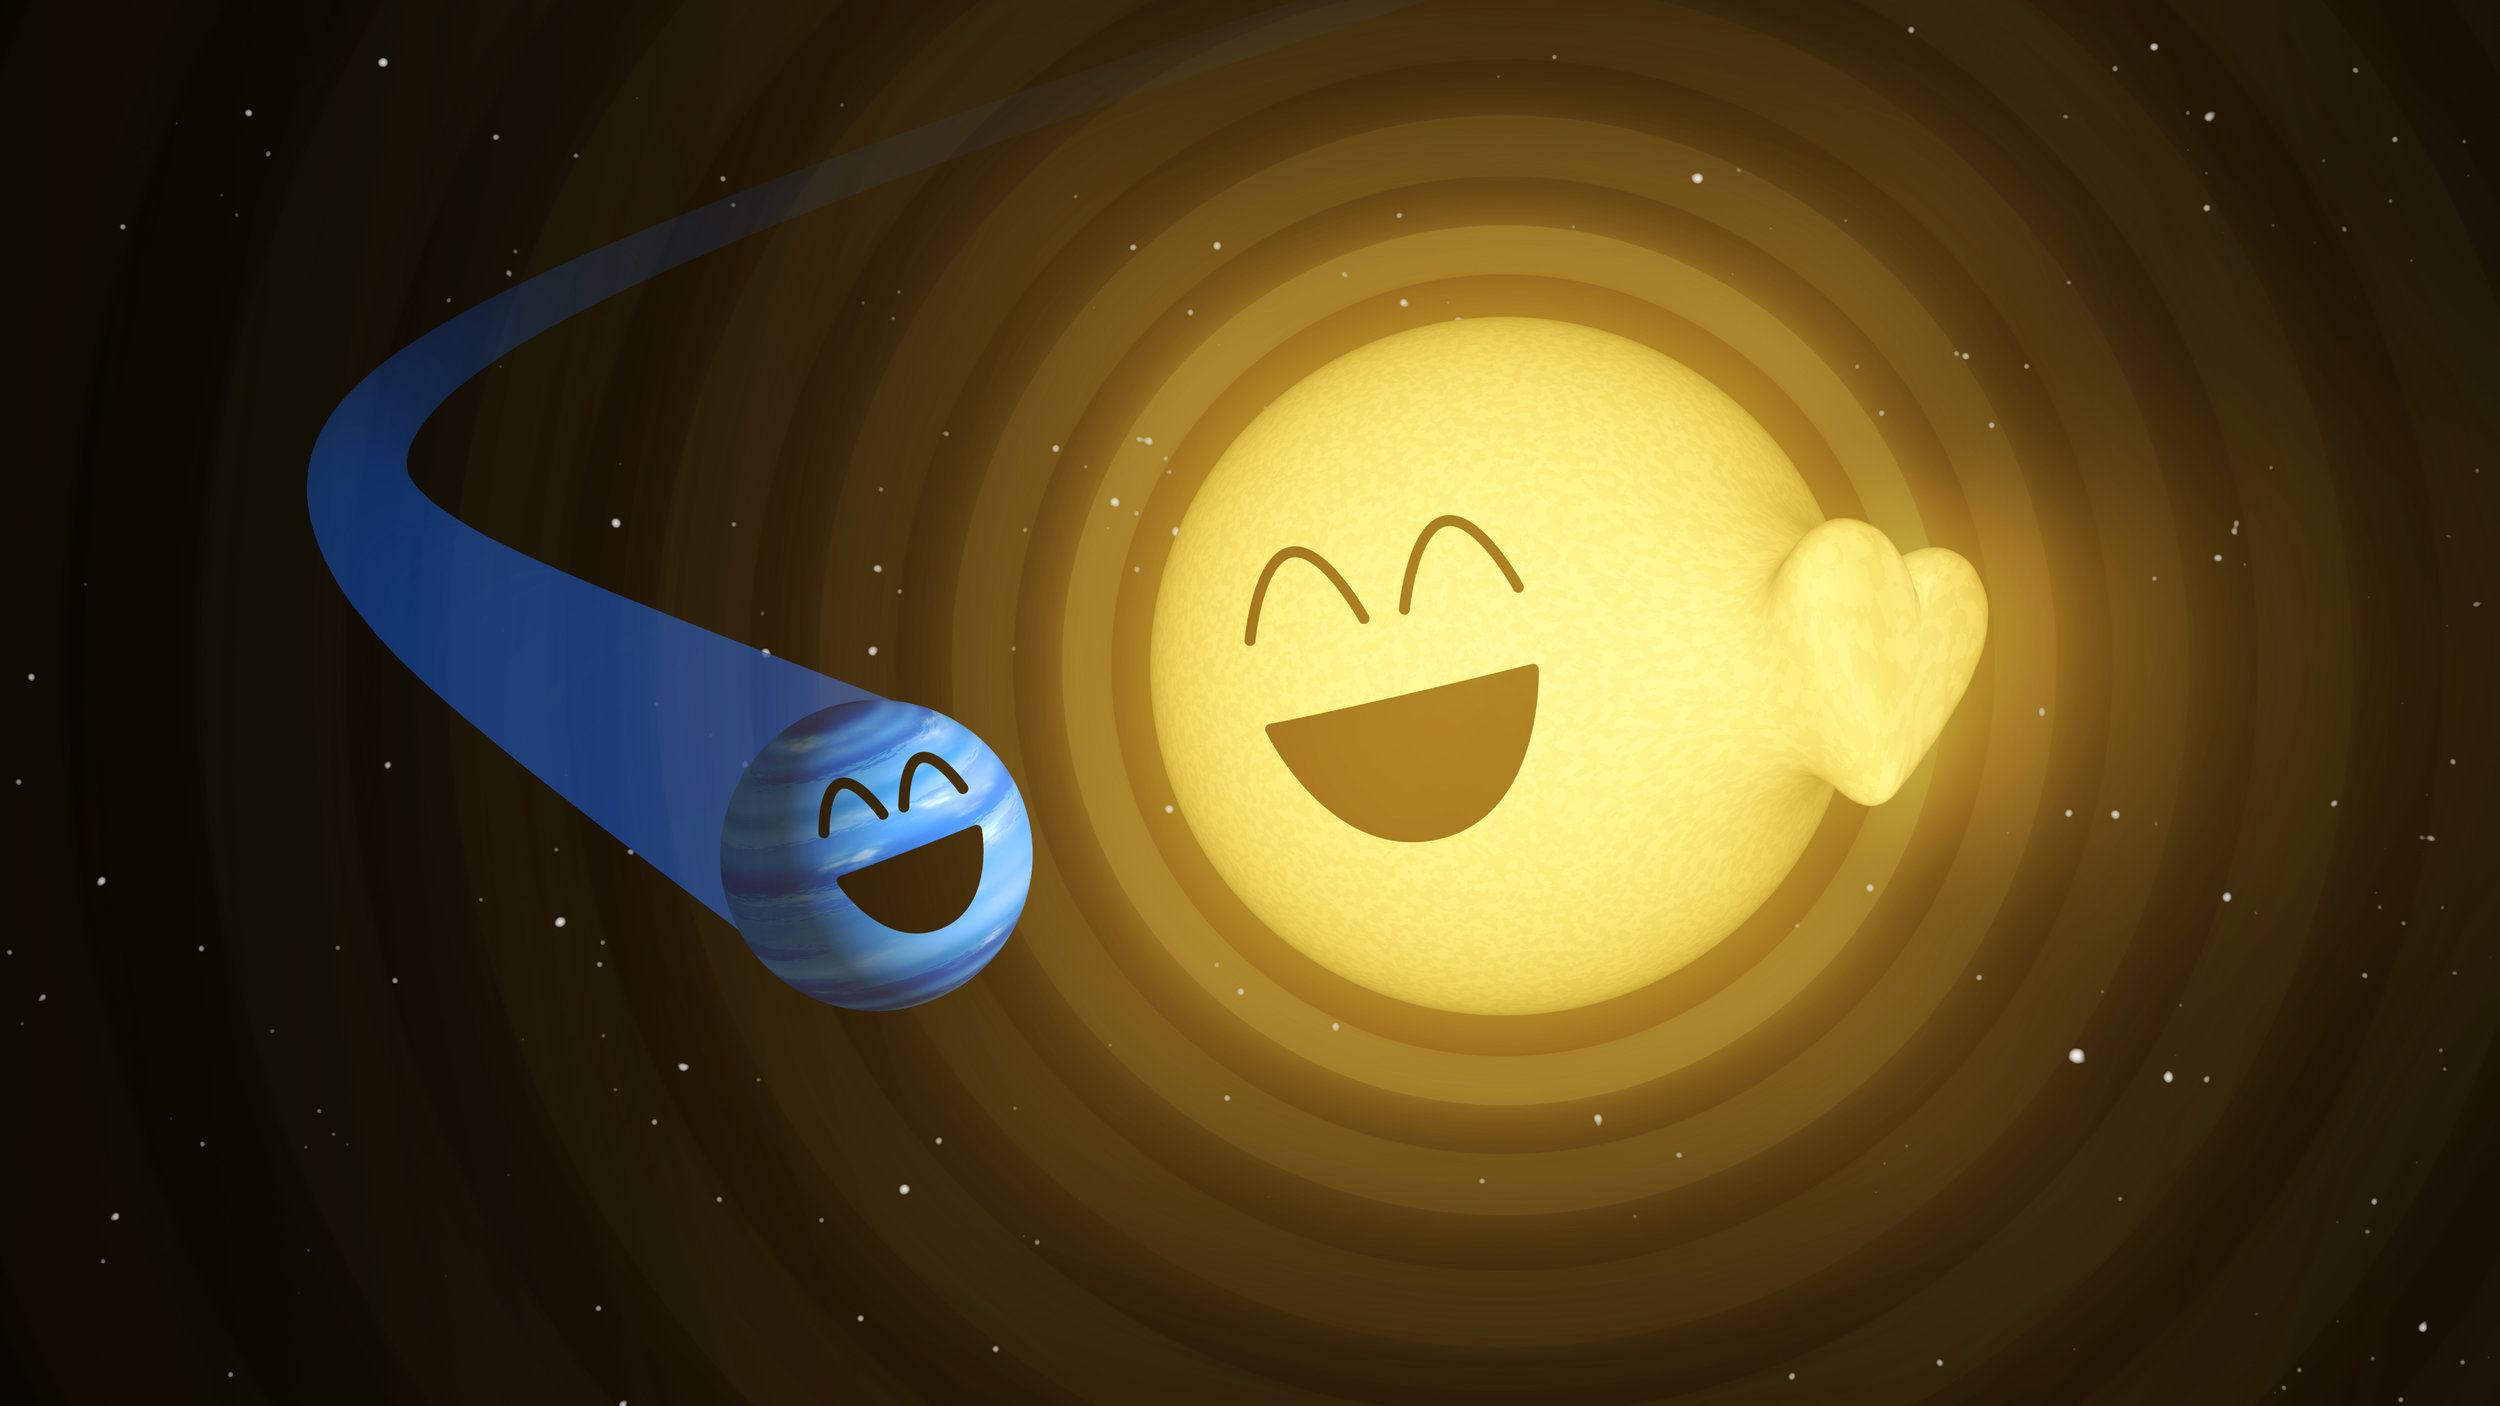 This illustration shows how the planet HAT-P-2b, left, appears to cause heartbeat-like pulsations in its host star, HAT-P-2. - Image Credits: NASA/JPL-Caltech